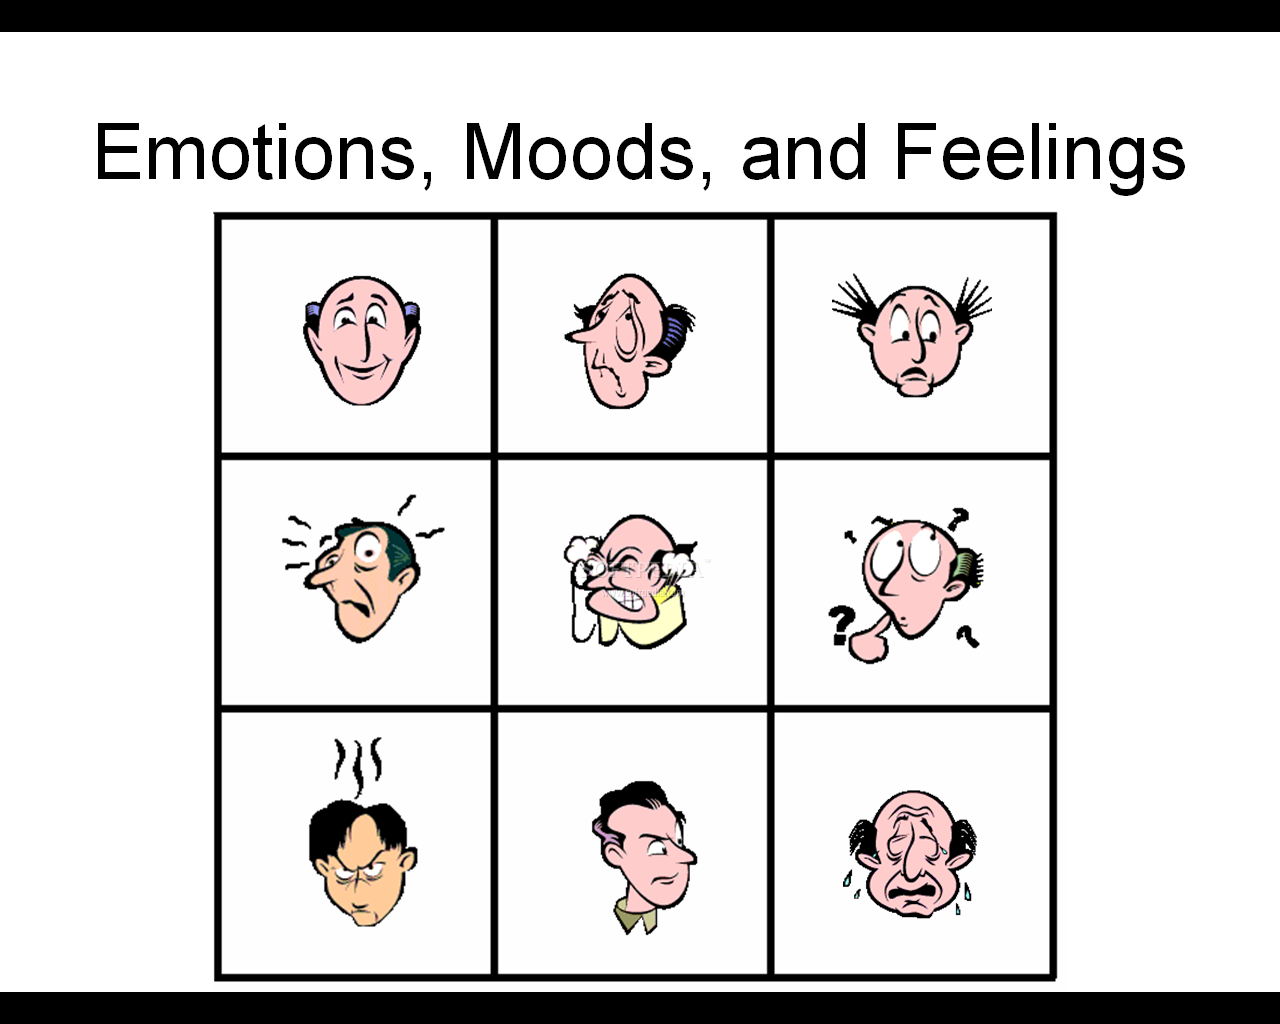 Emotions moods and feelings 1 1